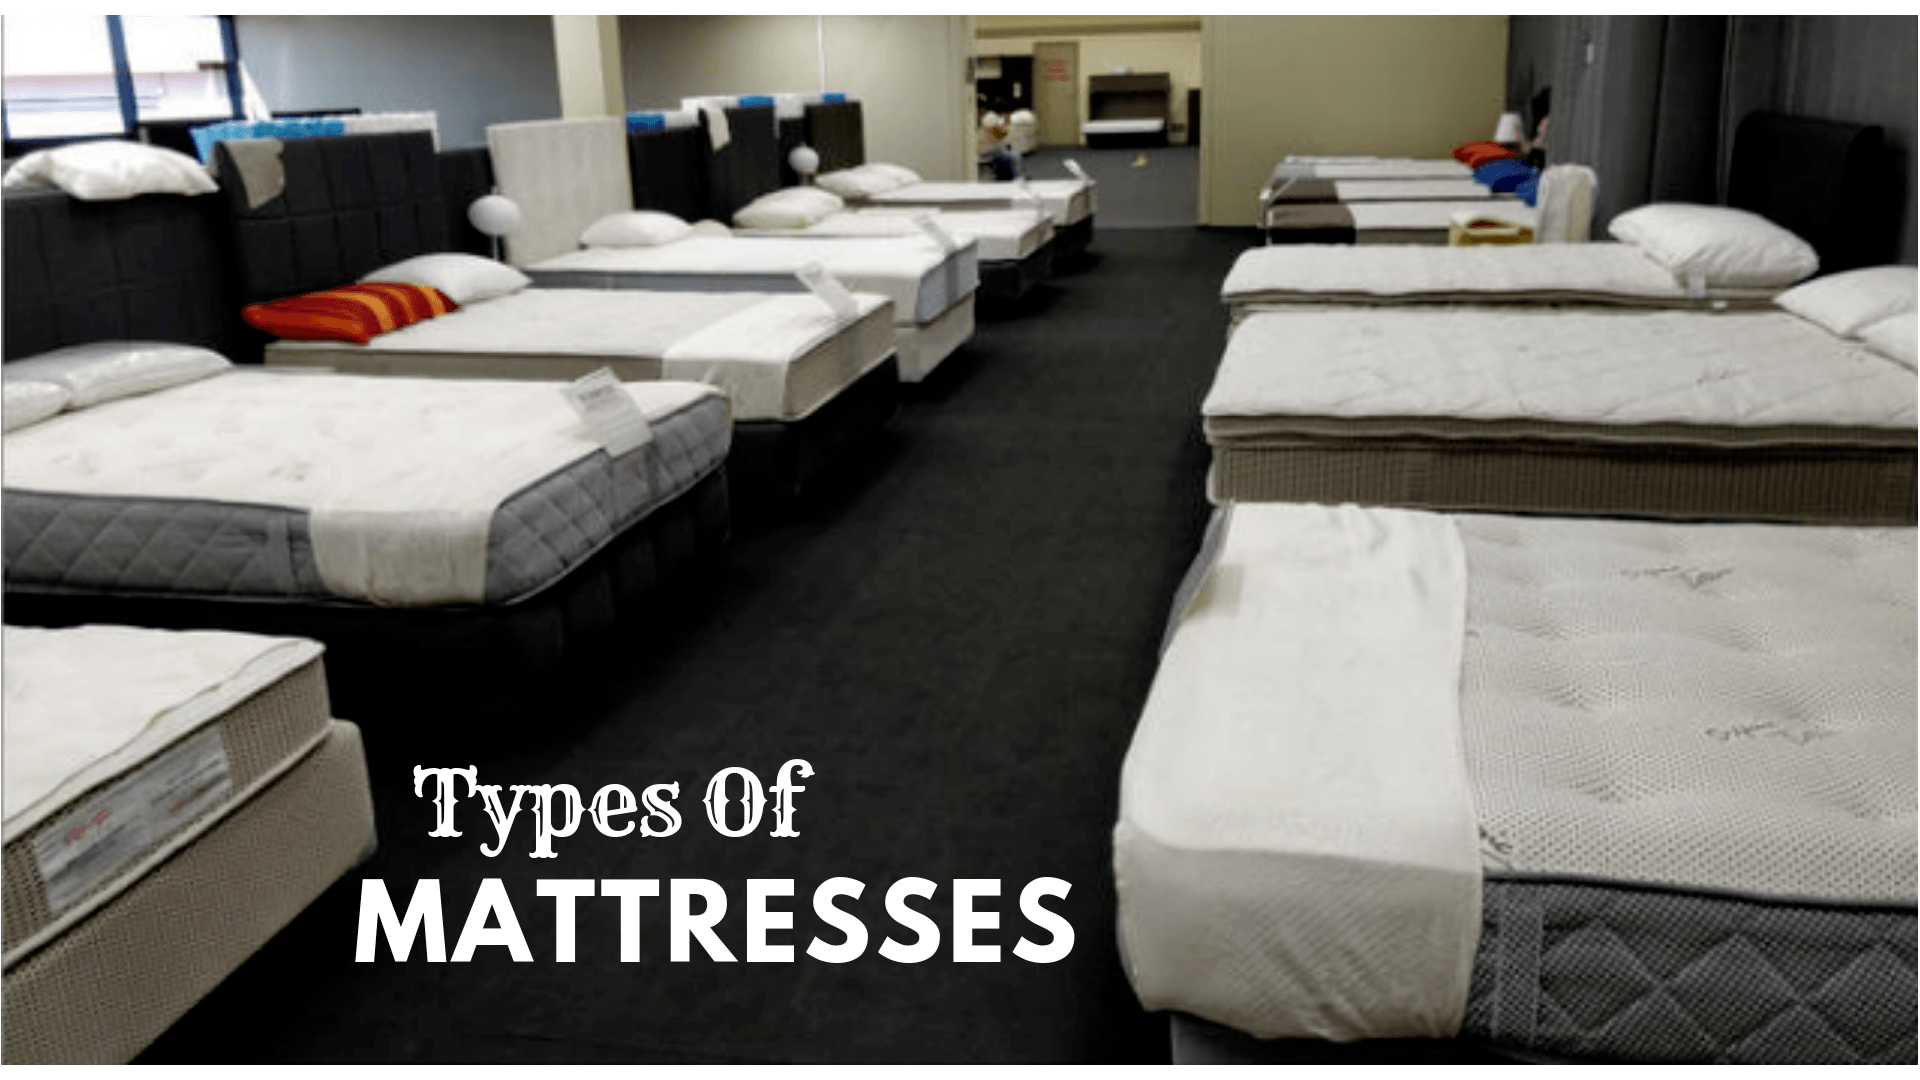 Best Mattresses Of 2020.Best Types Of Mattresses 2019 2020